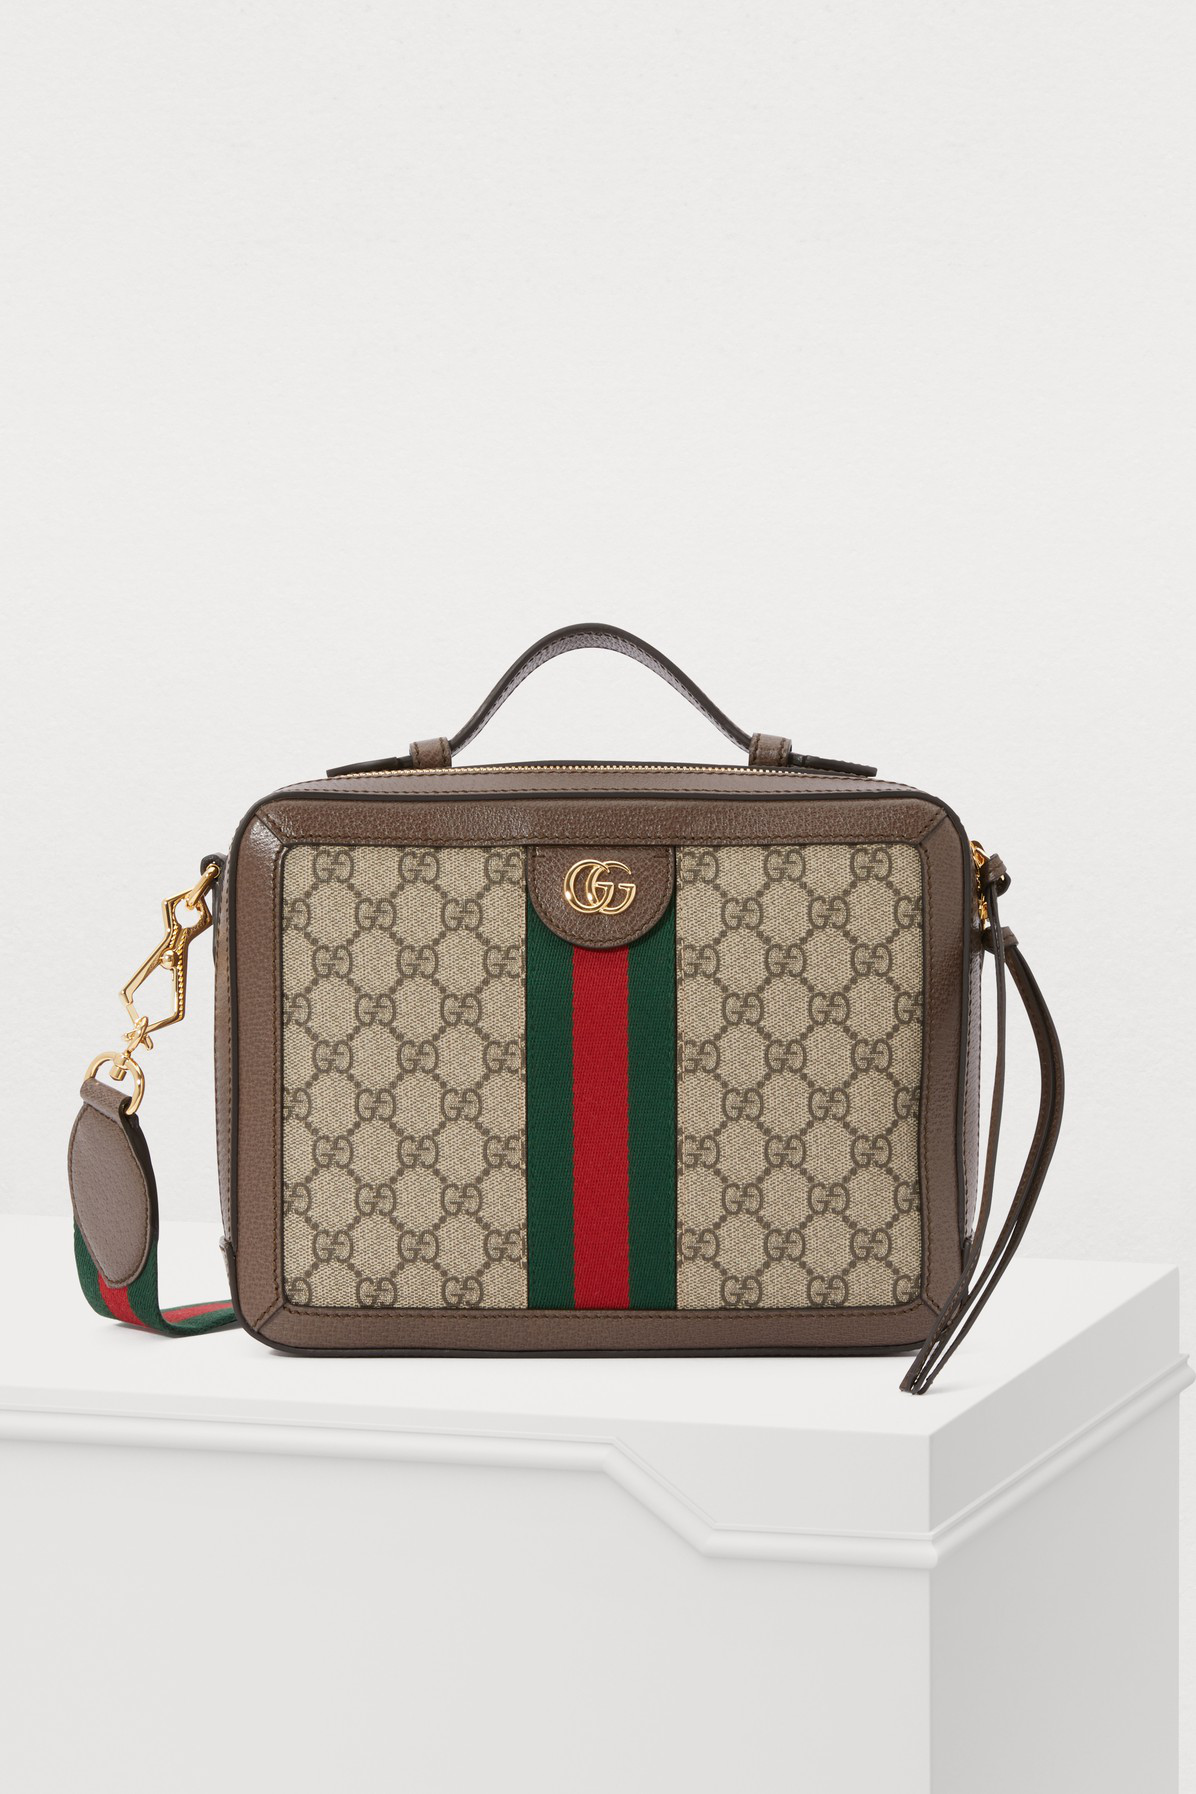 c2a9e505c Gucci Small Ophidia Gg Supreme Canvas Shoulder Bag - Beige In Brown ...